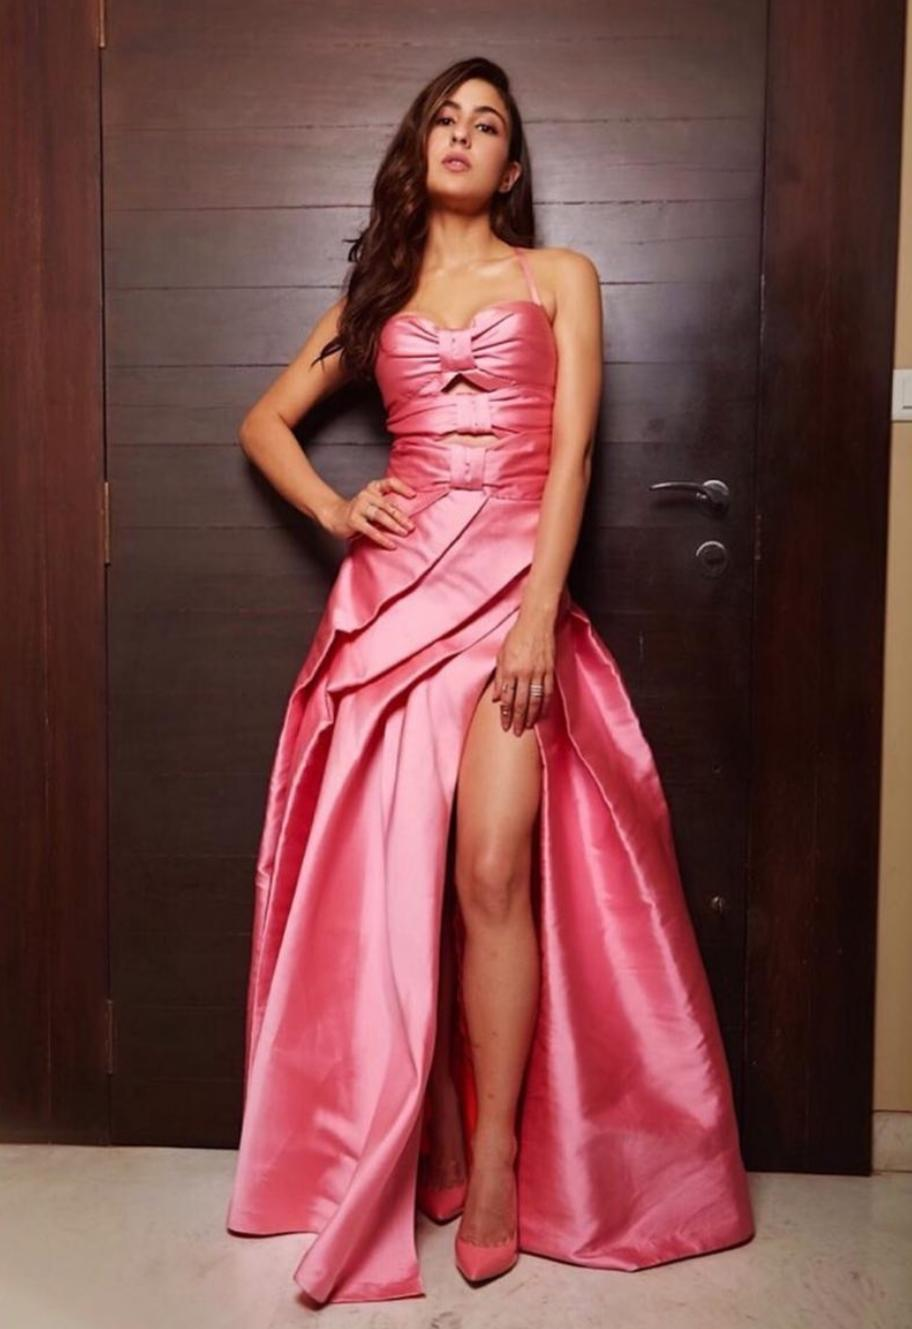 """The Pataudi girl turned heads at the Femina Beauty Awards 2019, as she looked breathtaking in her pink silk Monisha Jaising gown. The high slit gown with a sweetheart neckline was absolutely age appropriate for the """"just arrived"""" <em>Kedarnath </em>actress. It was a welcome change from Sara's signature salwar-kameez look as well. The side-slit rose all the way to her thighs, giving all the divas in the industry new leg goals."""